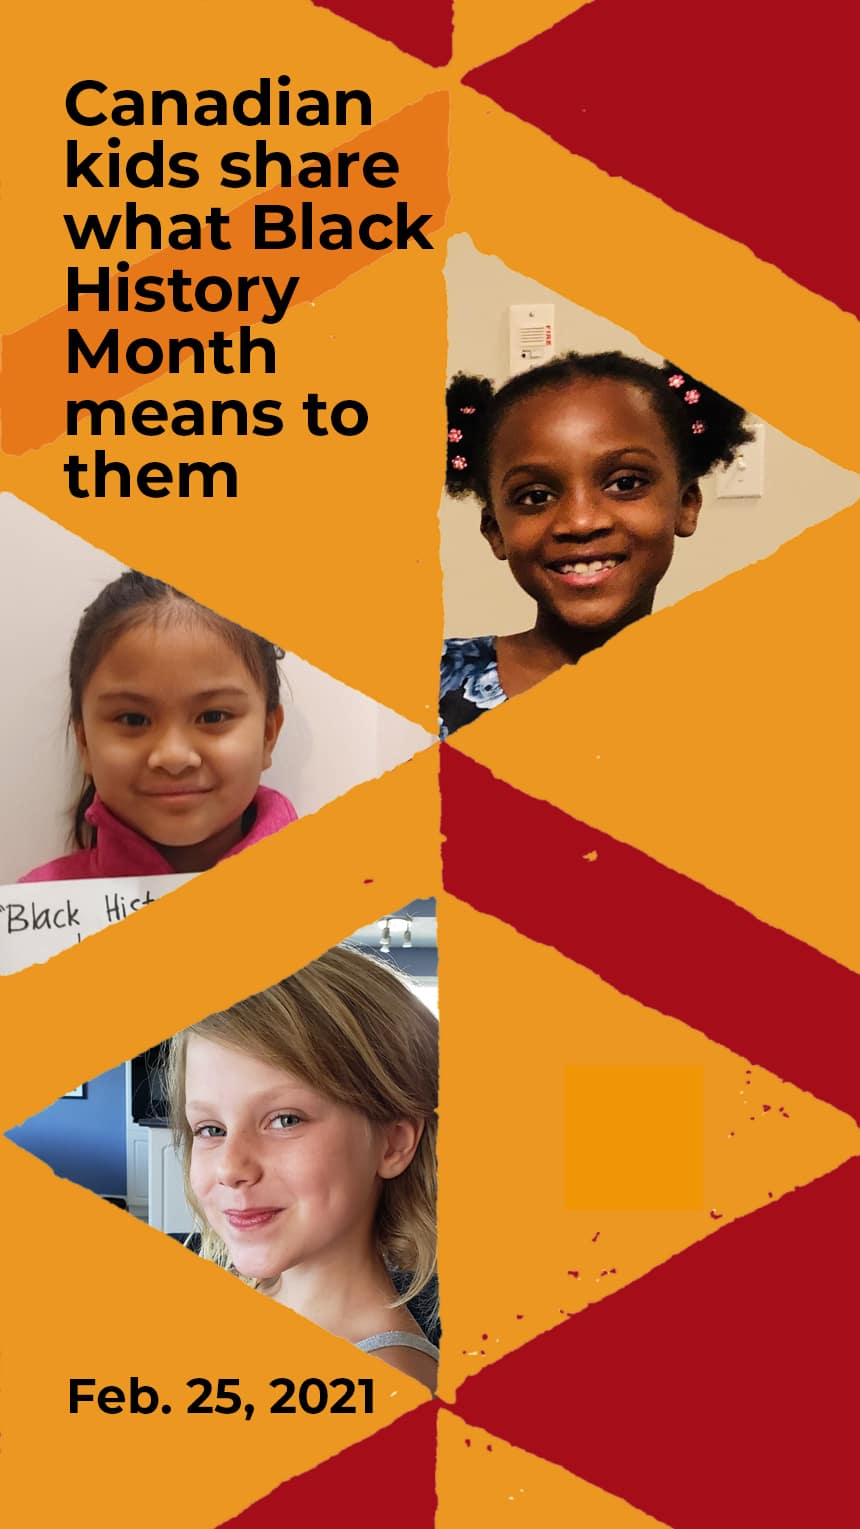 Canadian kids share what Black History Month means to them Feb. 25, 2021